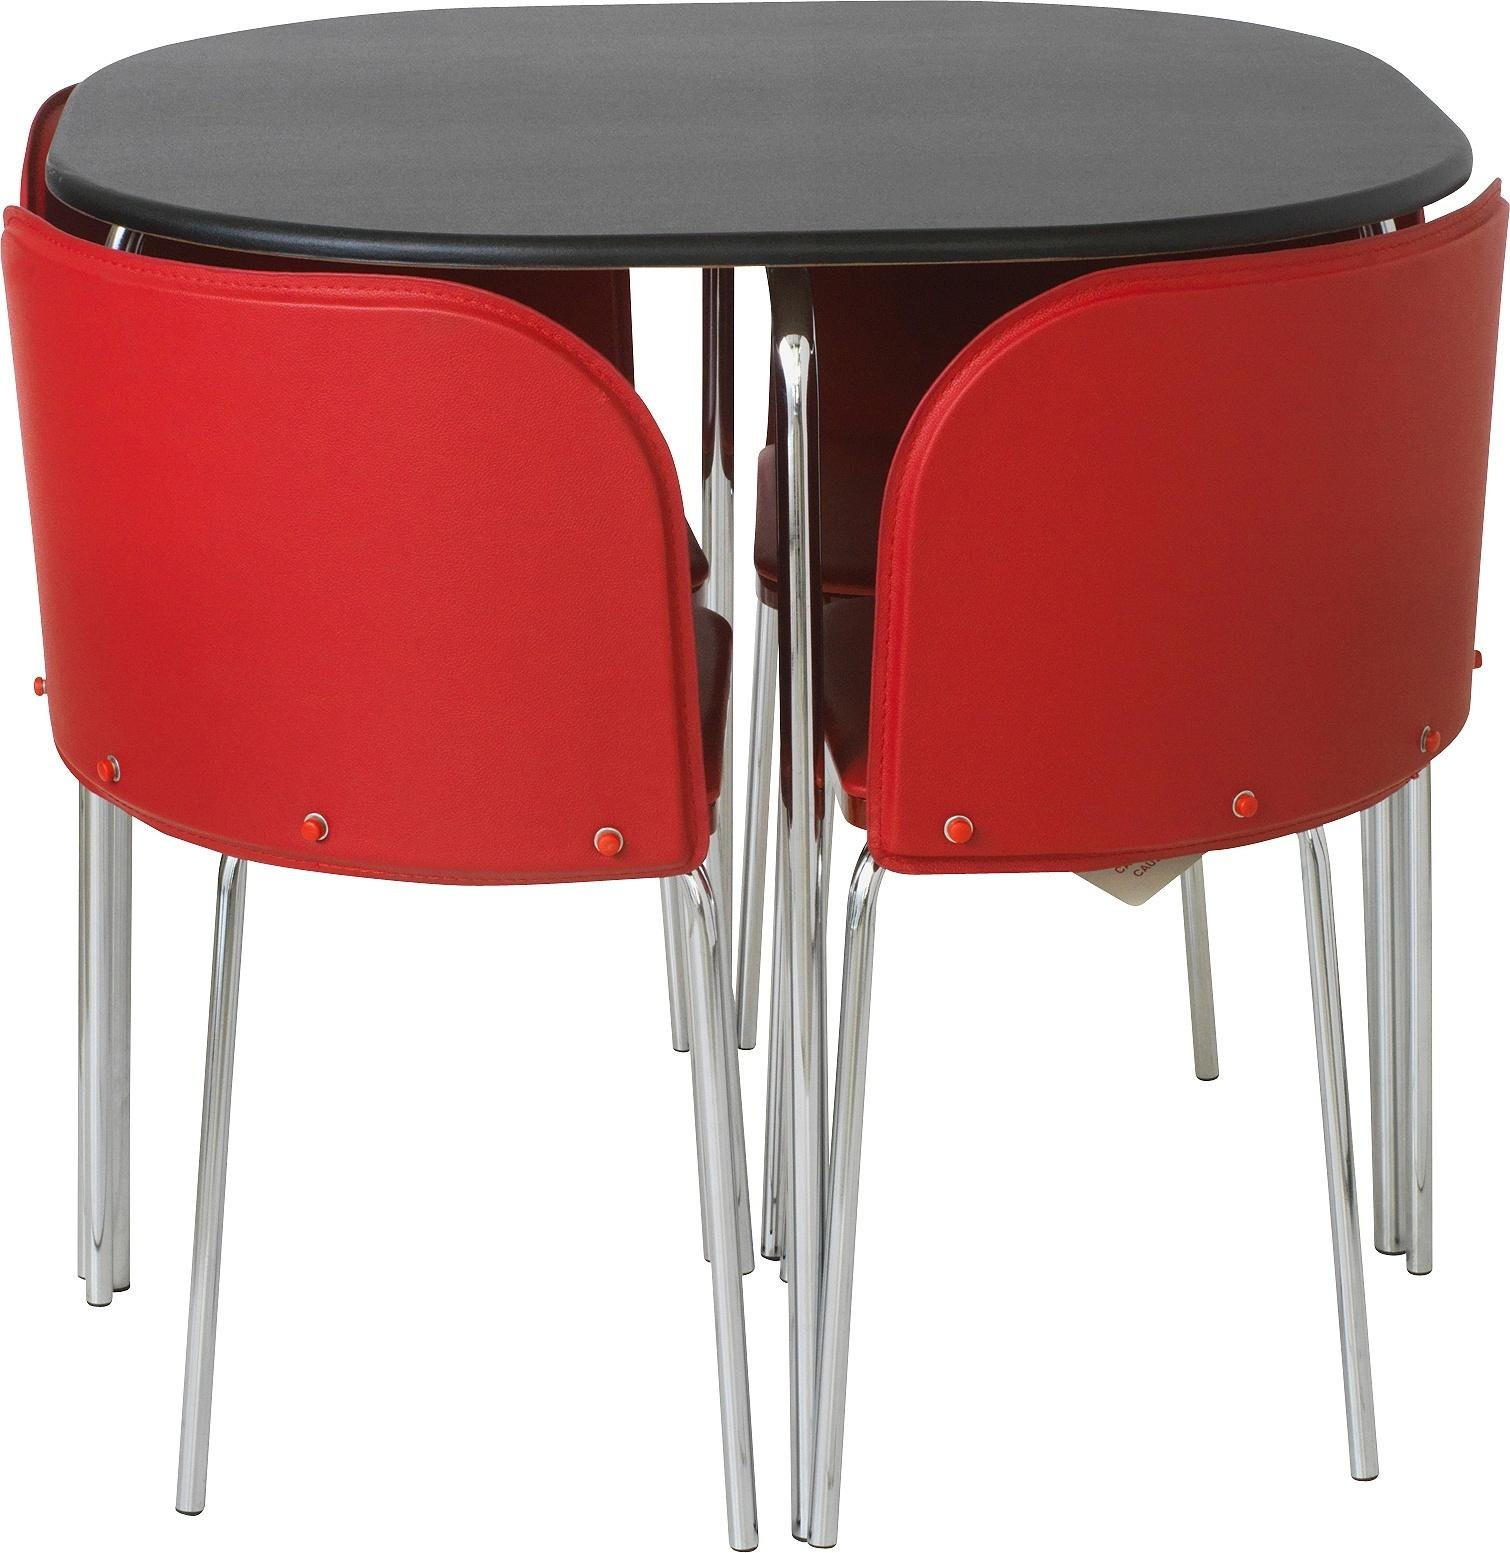 buy hygena amparo black dining table & 4 chairs - red | dining sets